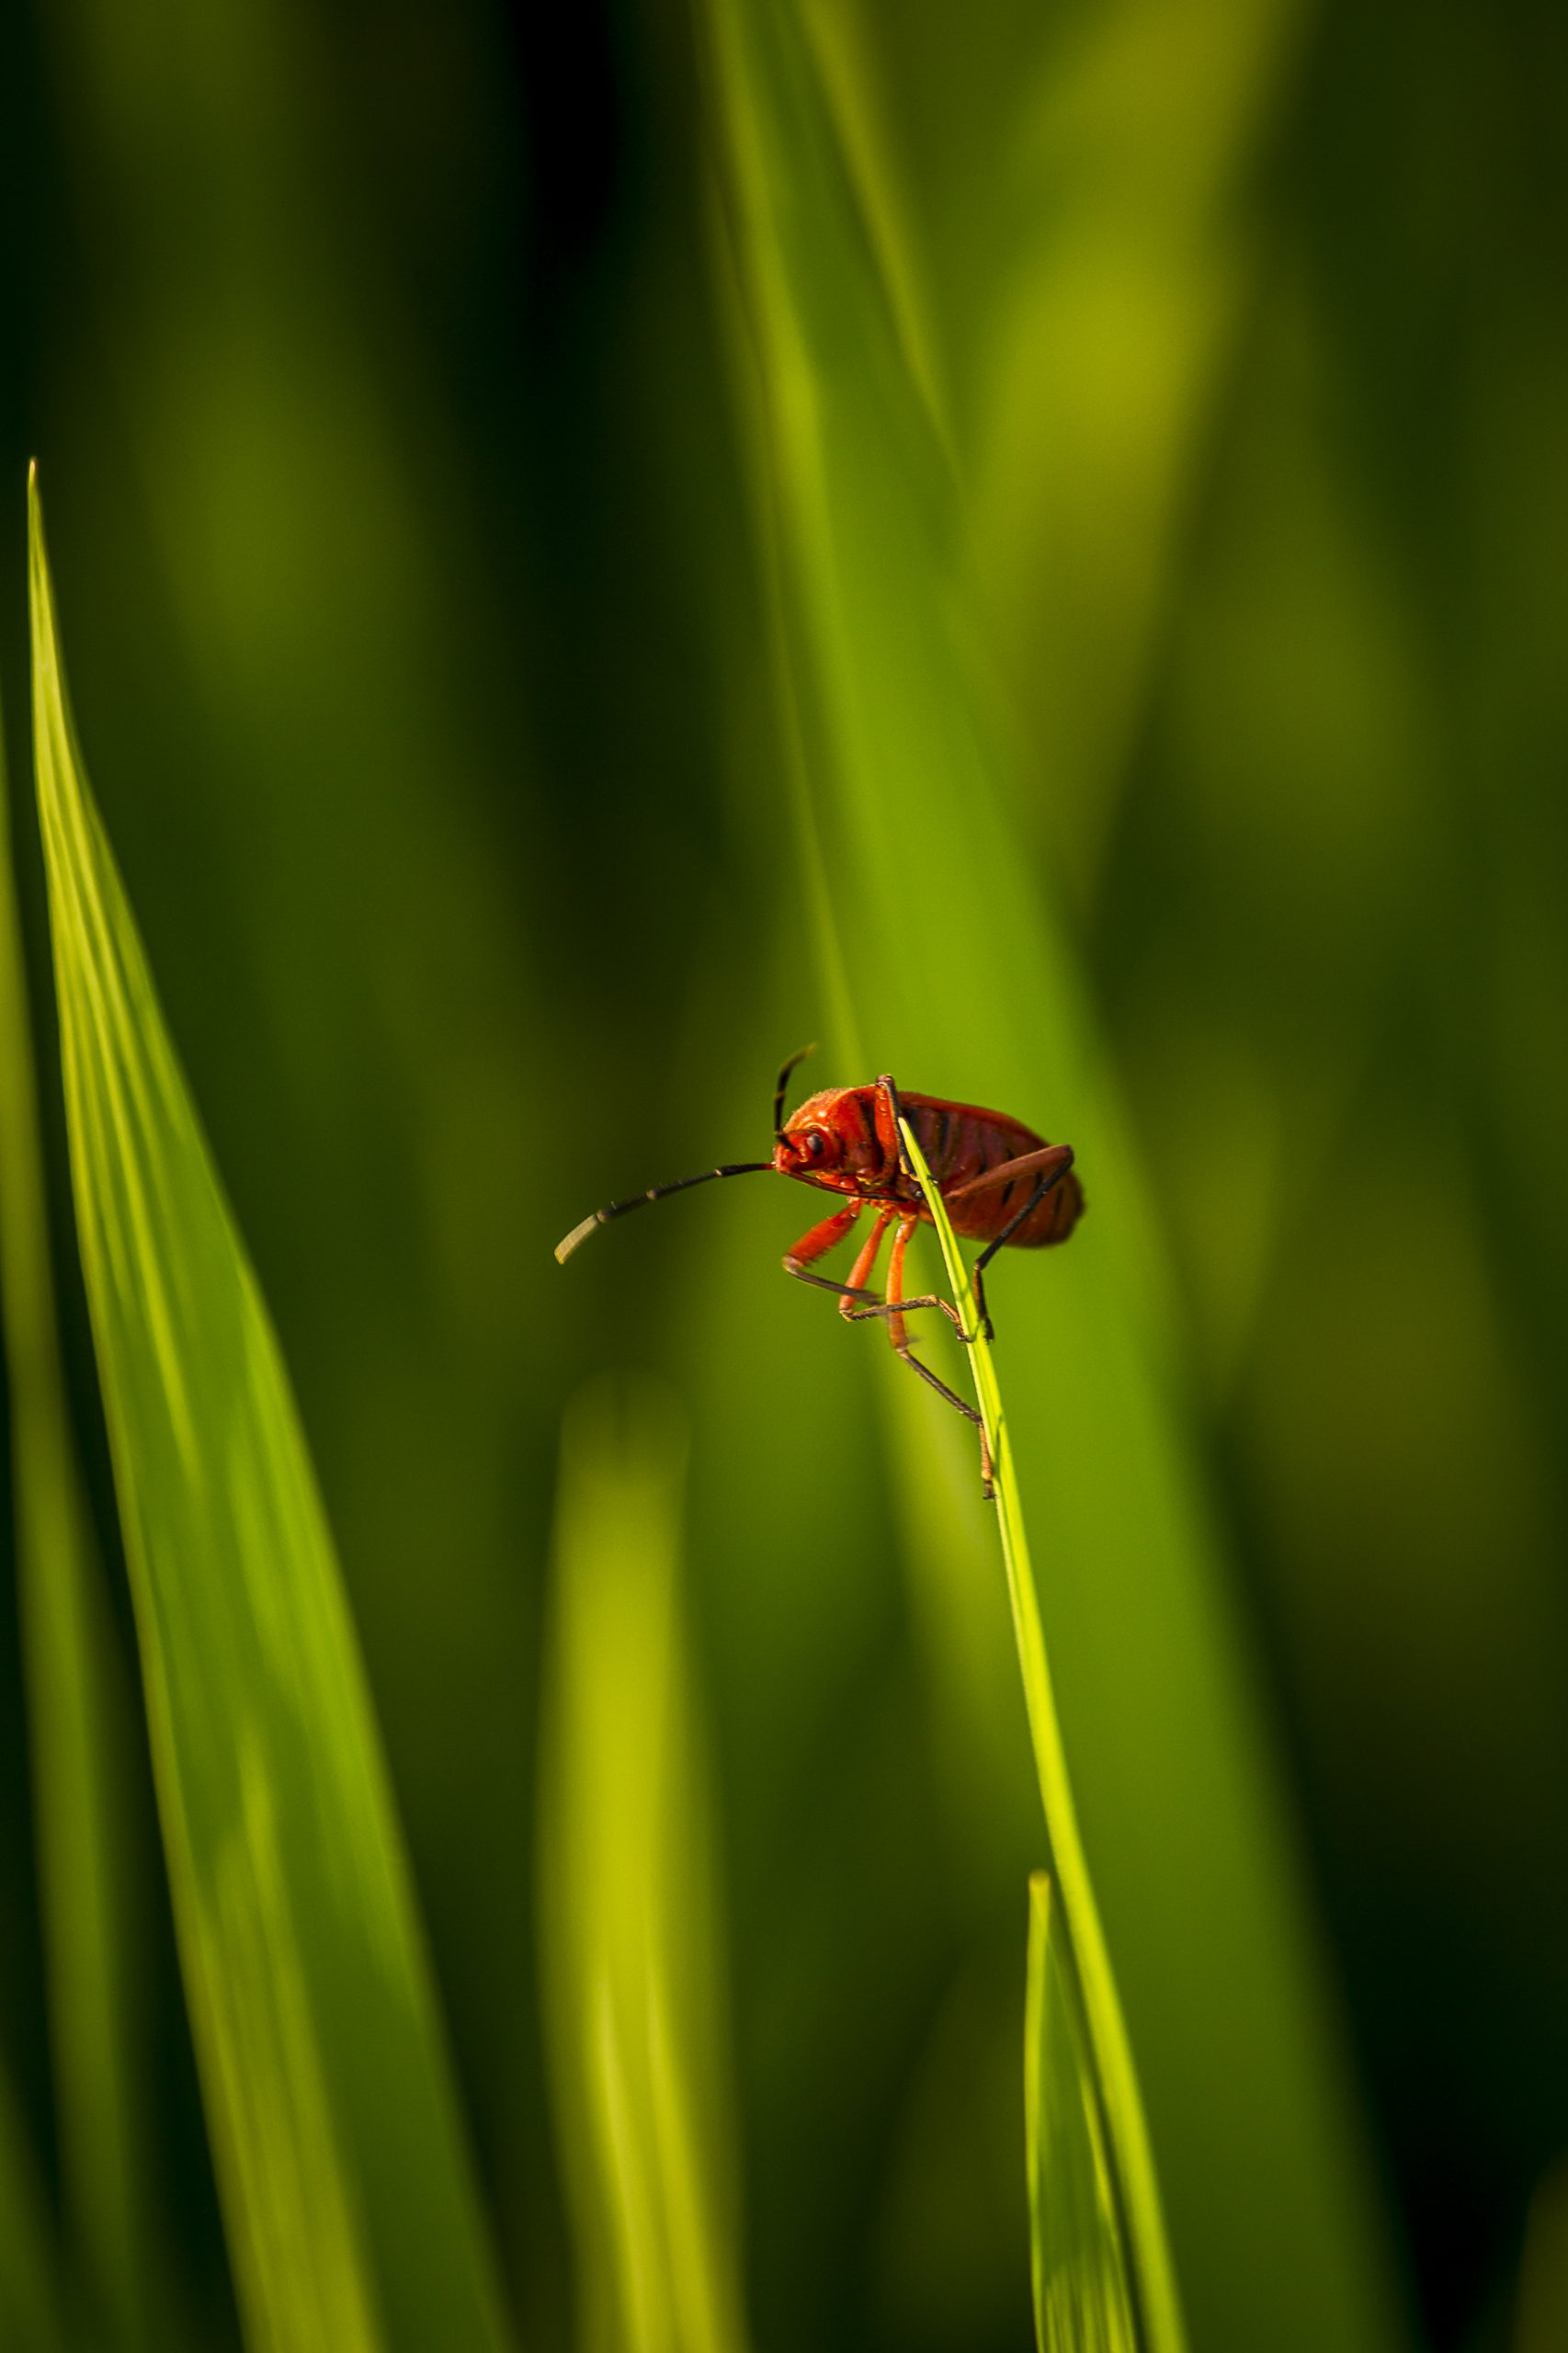 Red bug sitting on a edge of a leaf